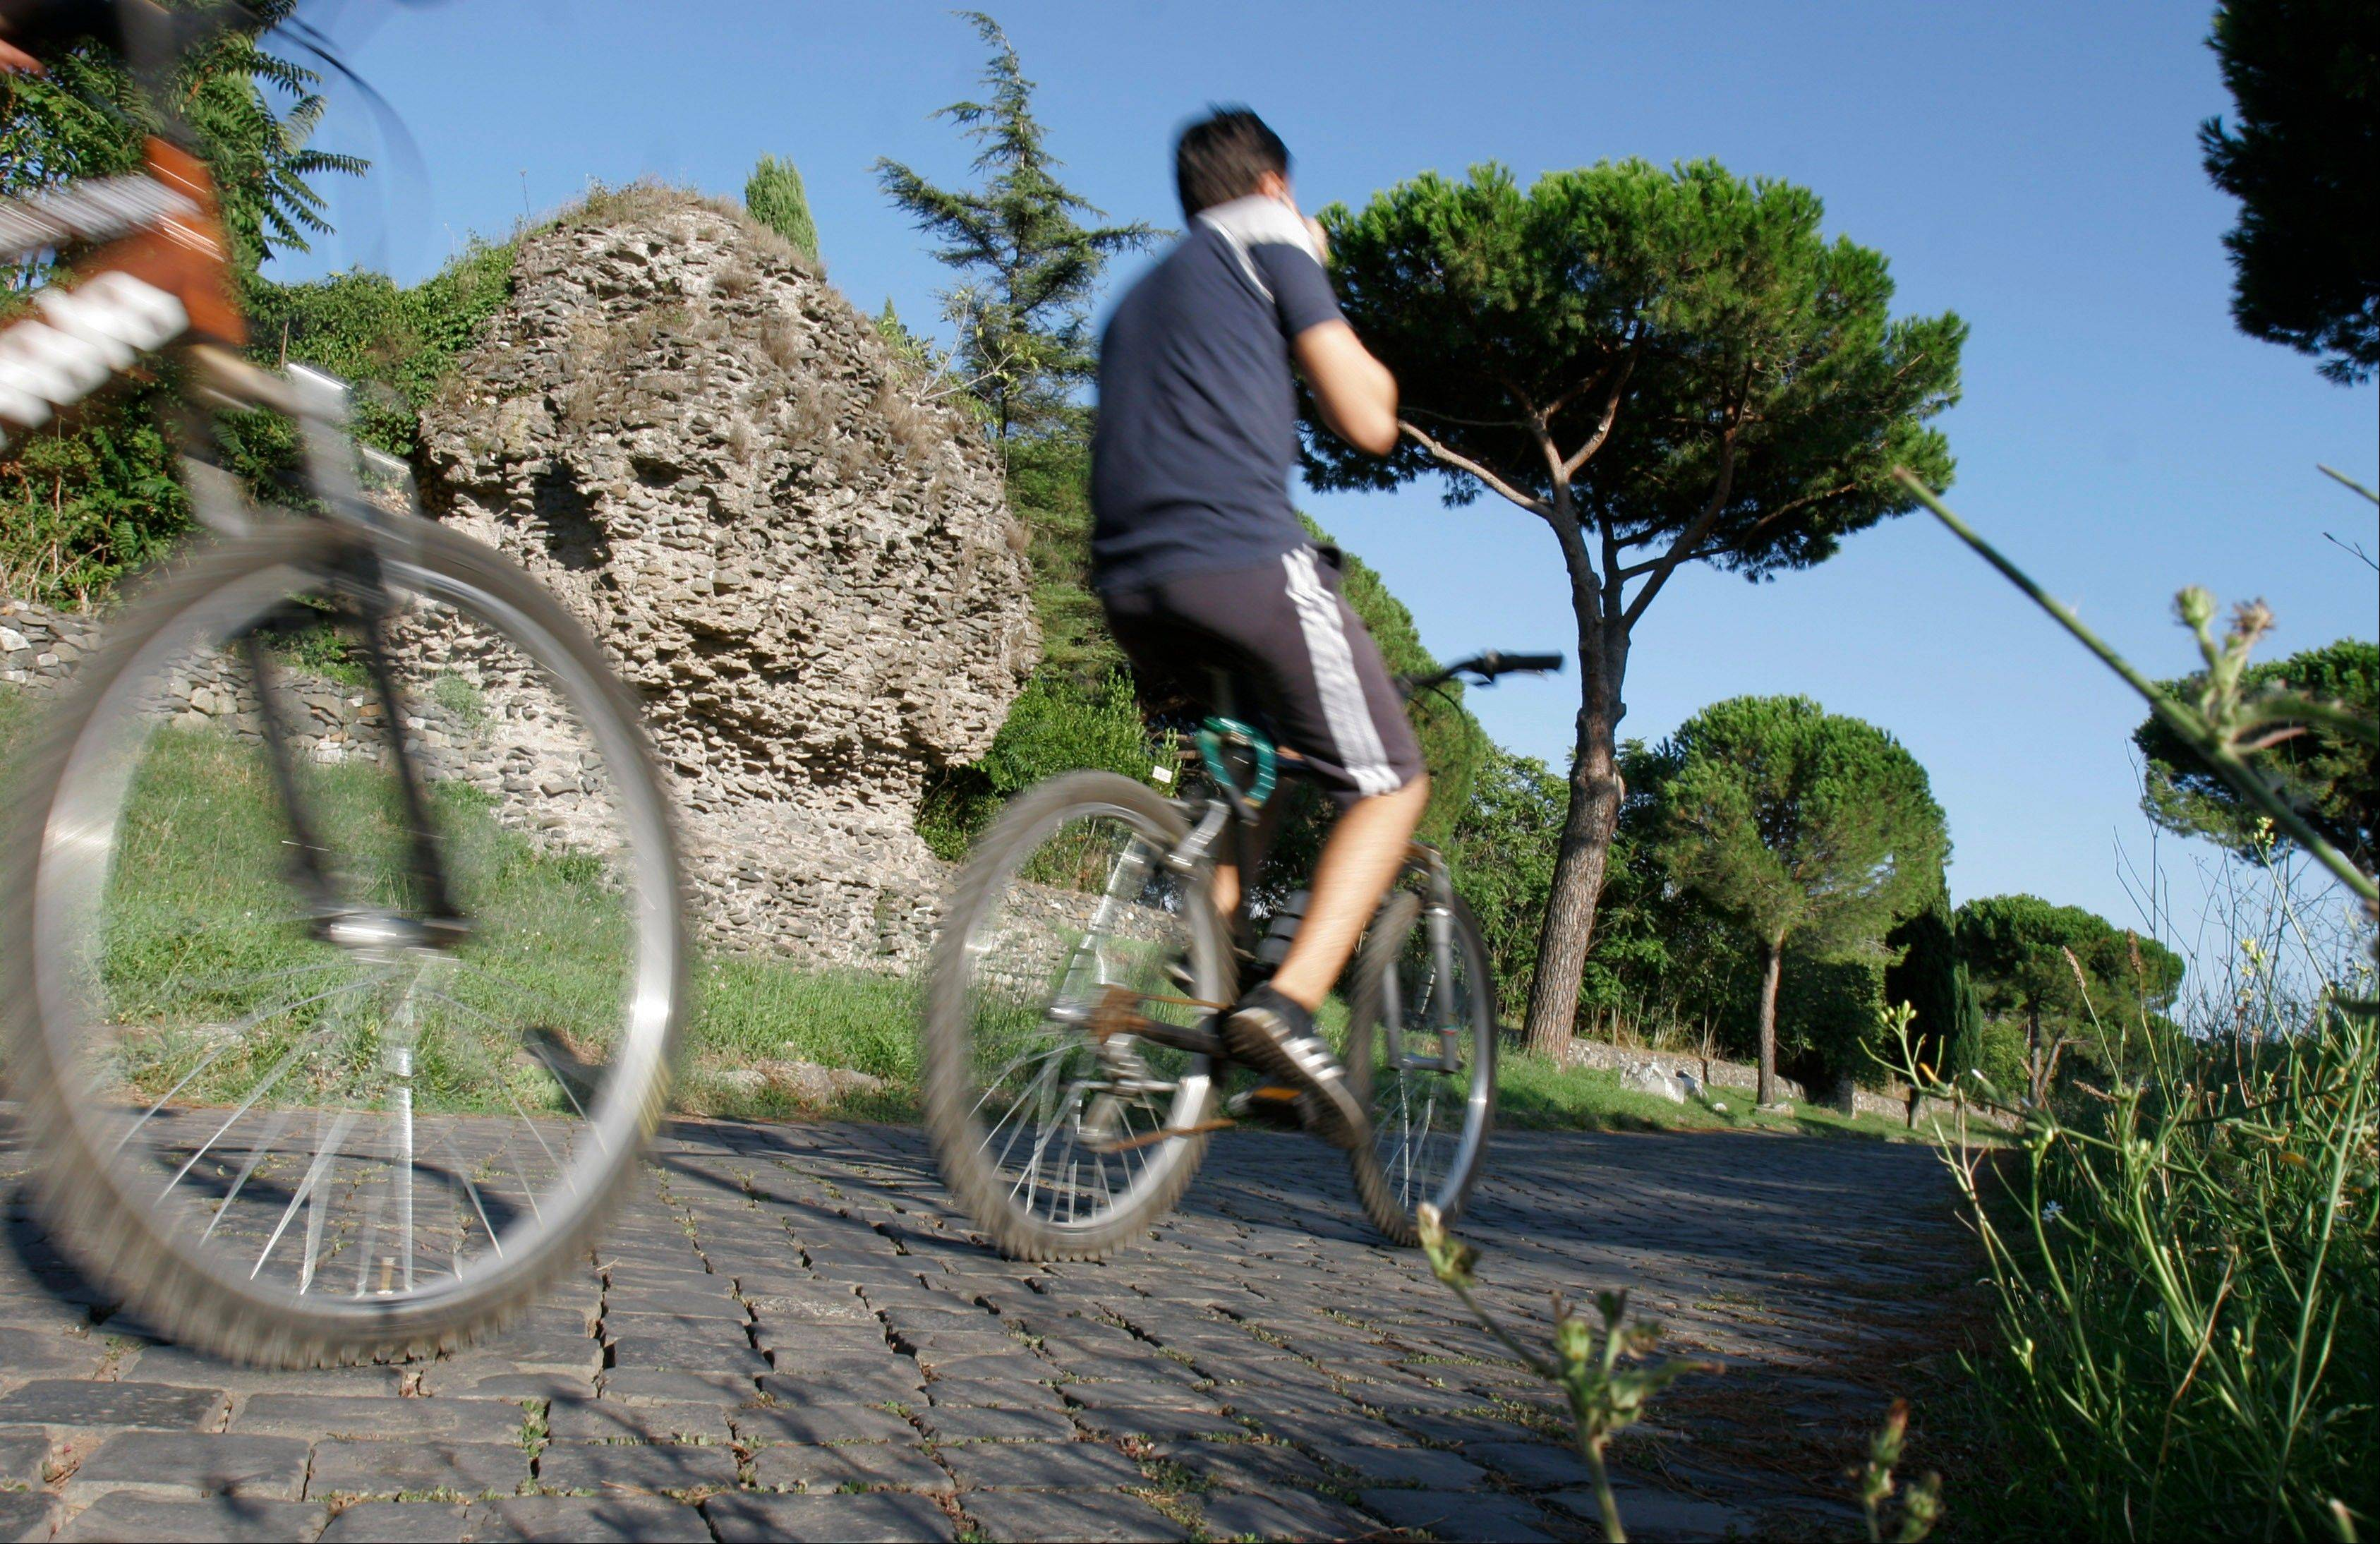 People cycle past ruins along the Appia Antica, the ancient Roman Appian Way, in Rome. The Ancient Appian Way was built in the fourth century B.C. by the censor Appius Claudius as a road to connect Rome with southern Italy.